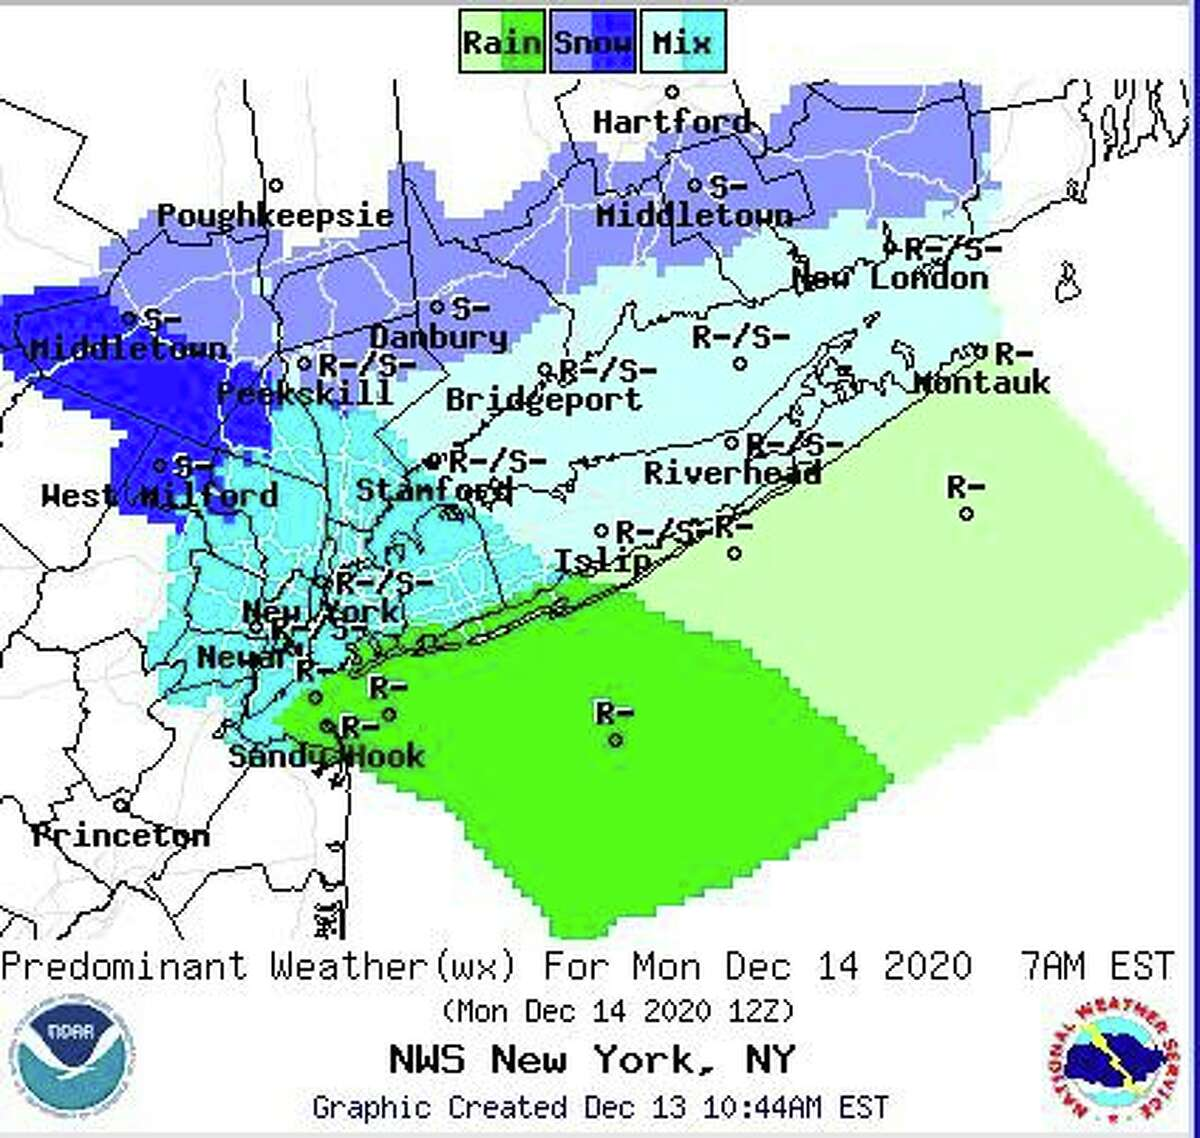 The amount and type of precipitation forecast for Monday, according to the National Weather Service.